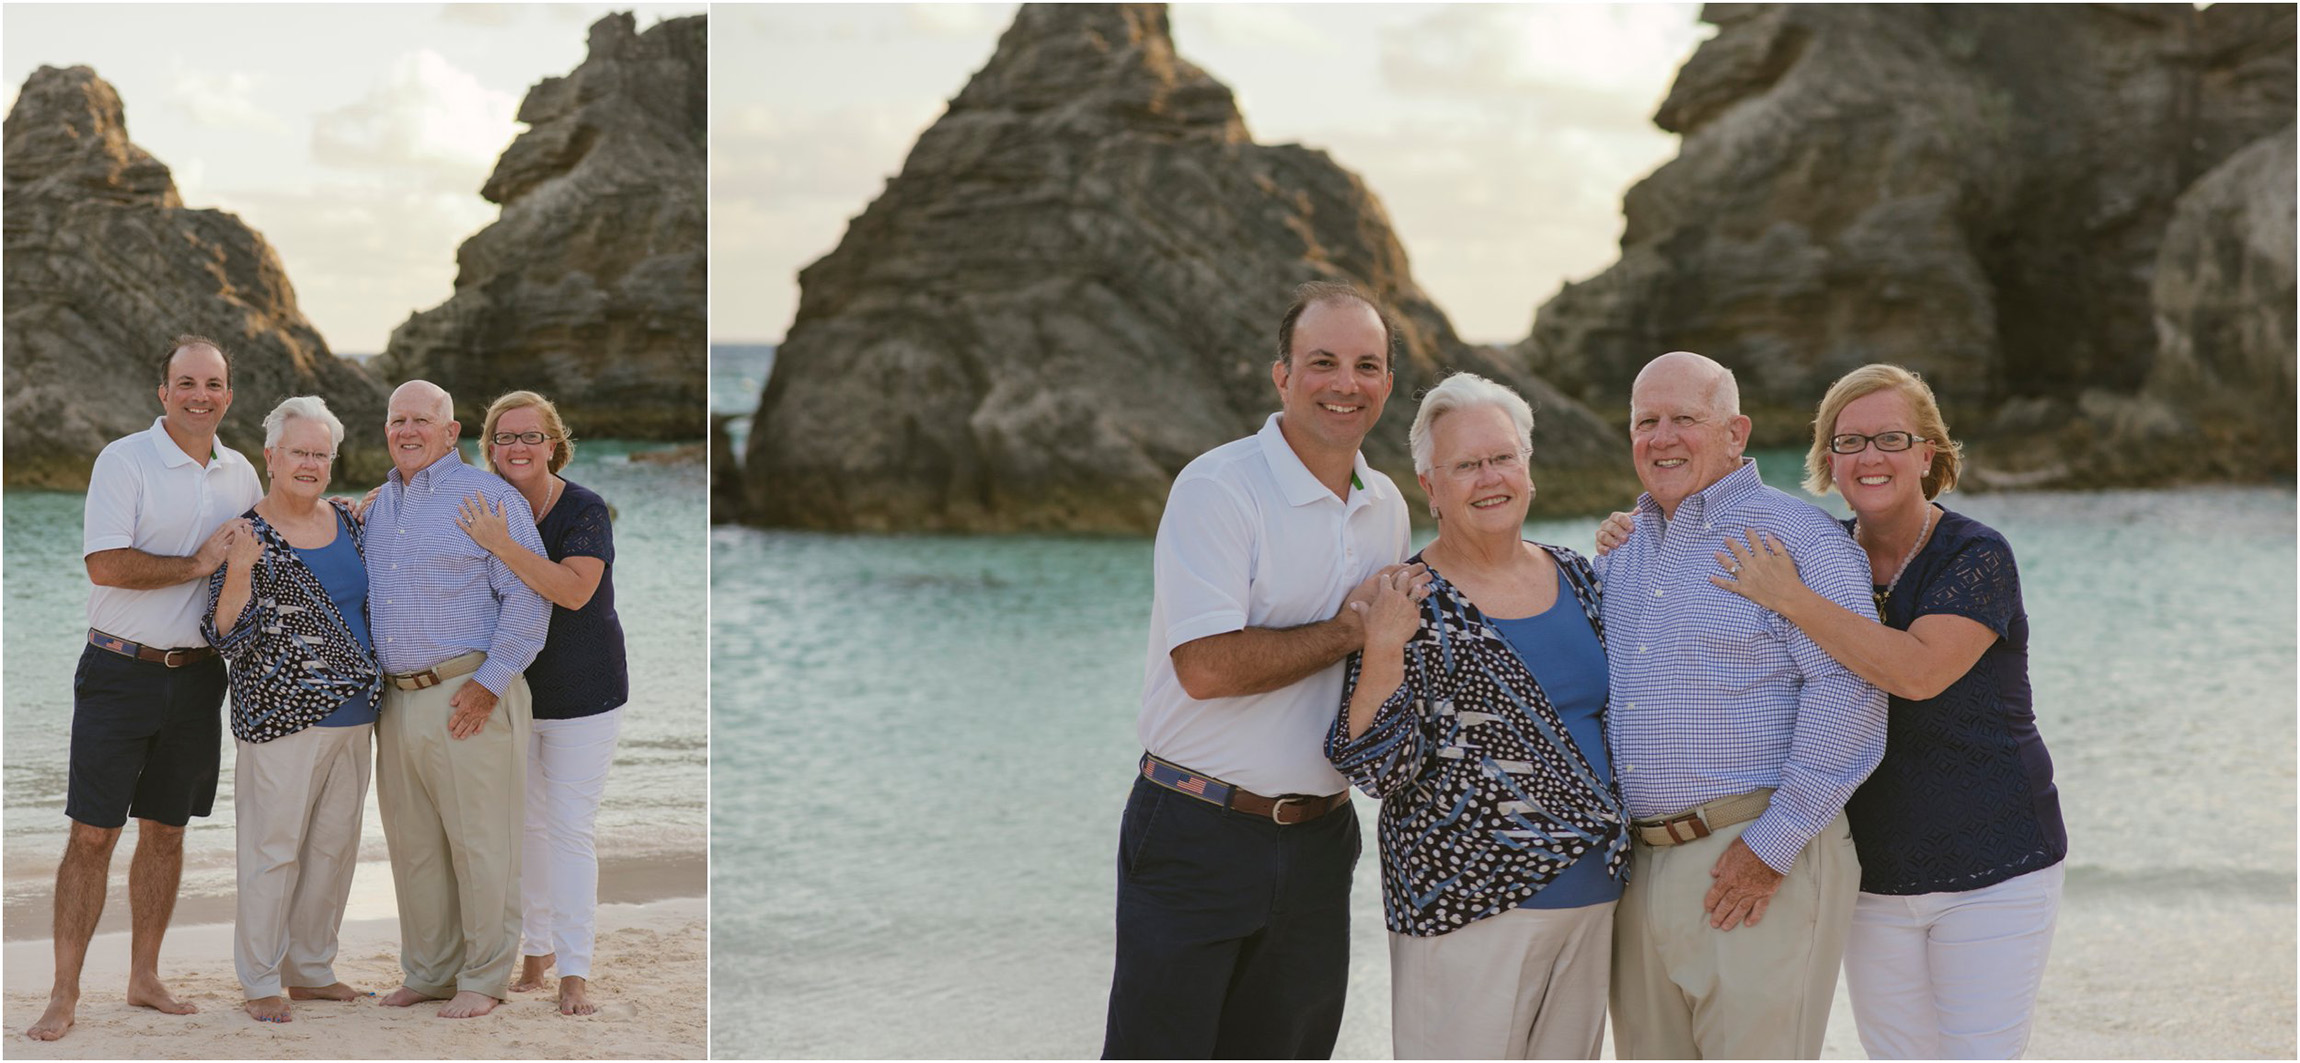 Fiander Foto_Bermuda Photographer_Horseshoe Bay Beach__Alicia's Family_005.jpg